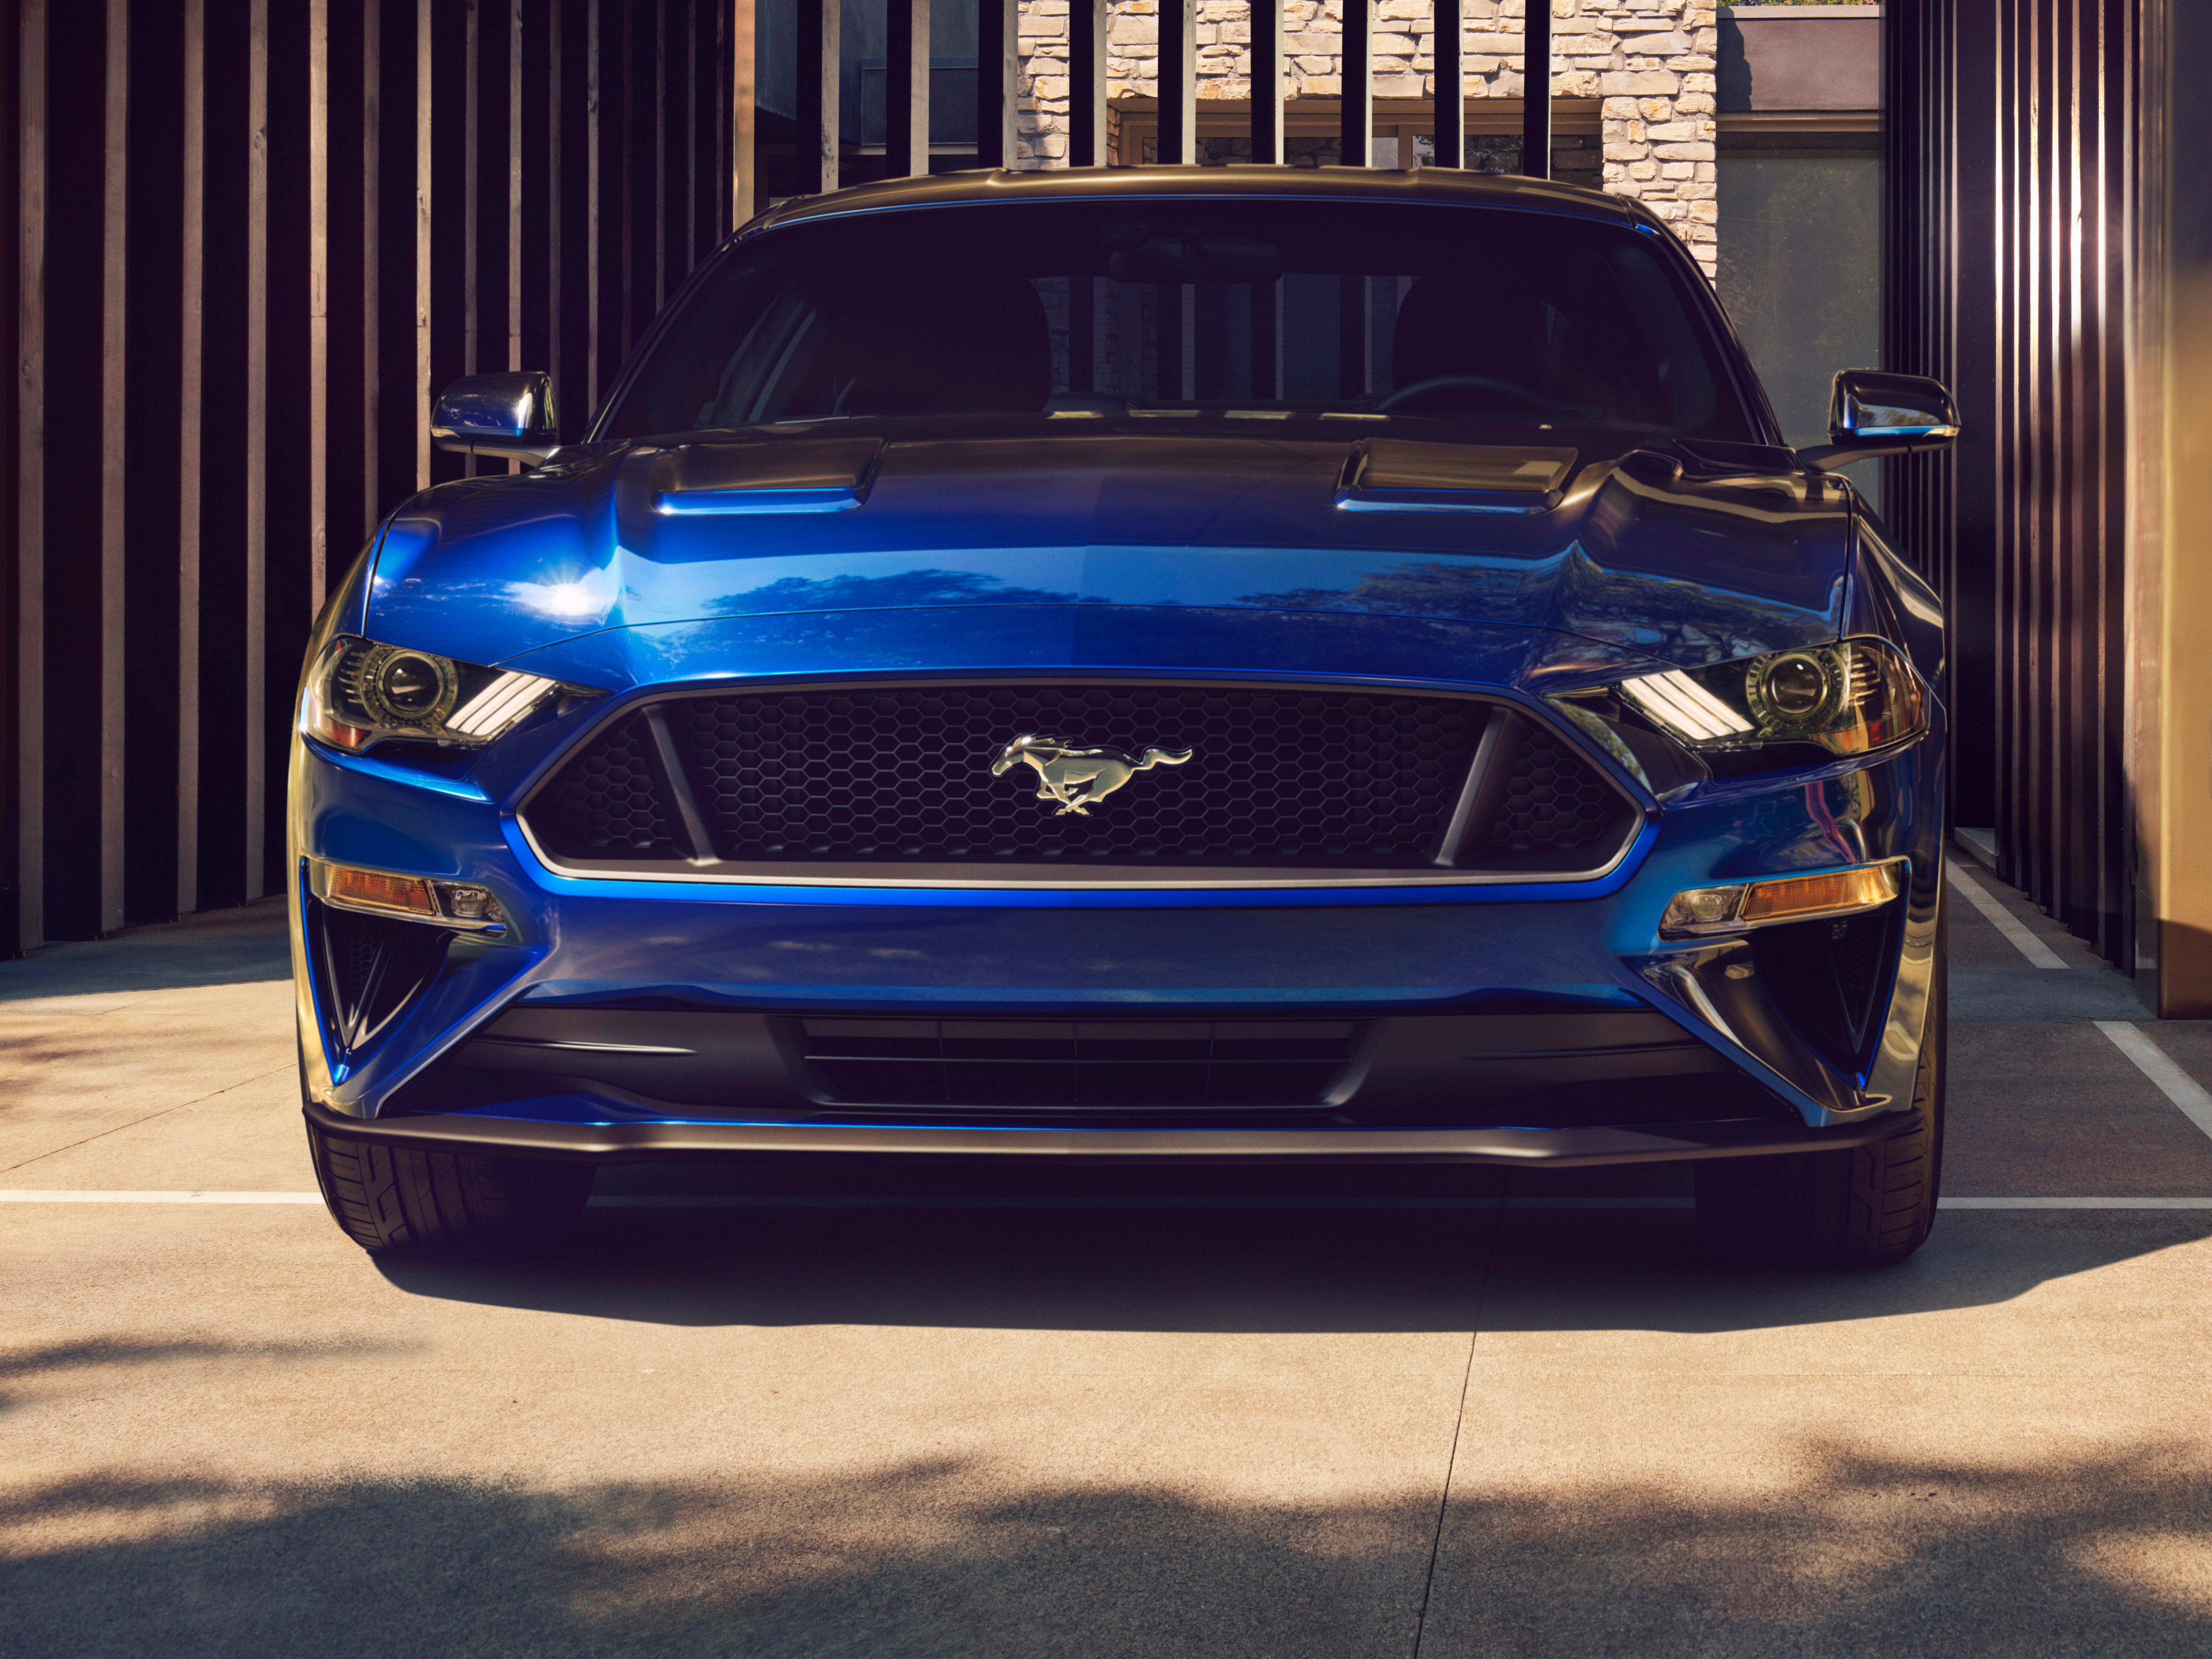 632_New -Ford -Mustang -V8-GT-with -Performace -Pack -in -Kona -Blue -2